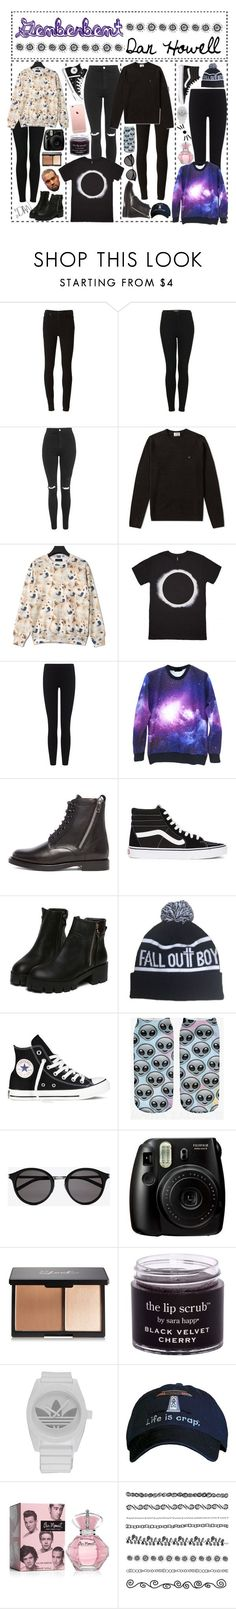 genderbent - DAN HOWELL by angietbh ❤ liked on Polyvore featuring Paige Denim, Topshop, Acne Studios, James Perse, Yves Saint Laurent, Vans, Converse, adidas, womens clothing and women